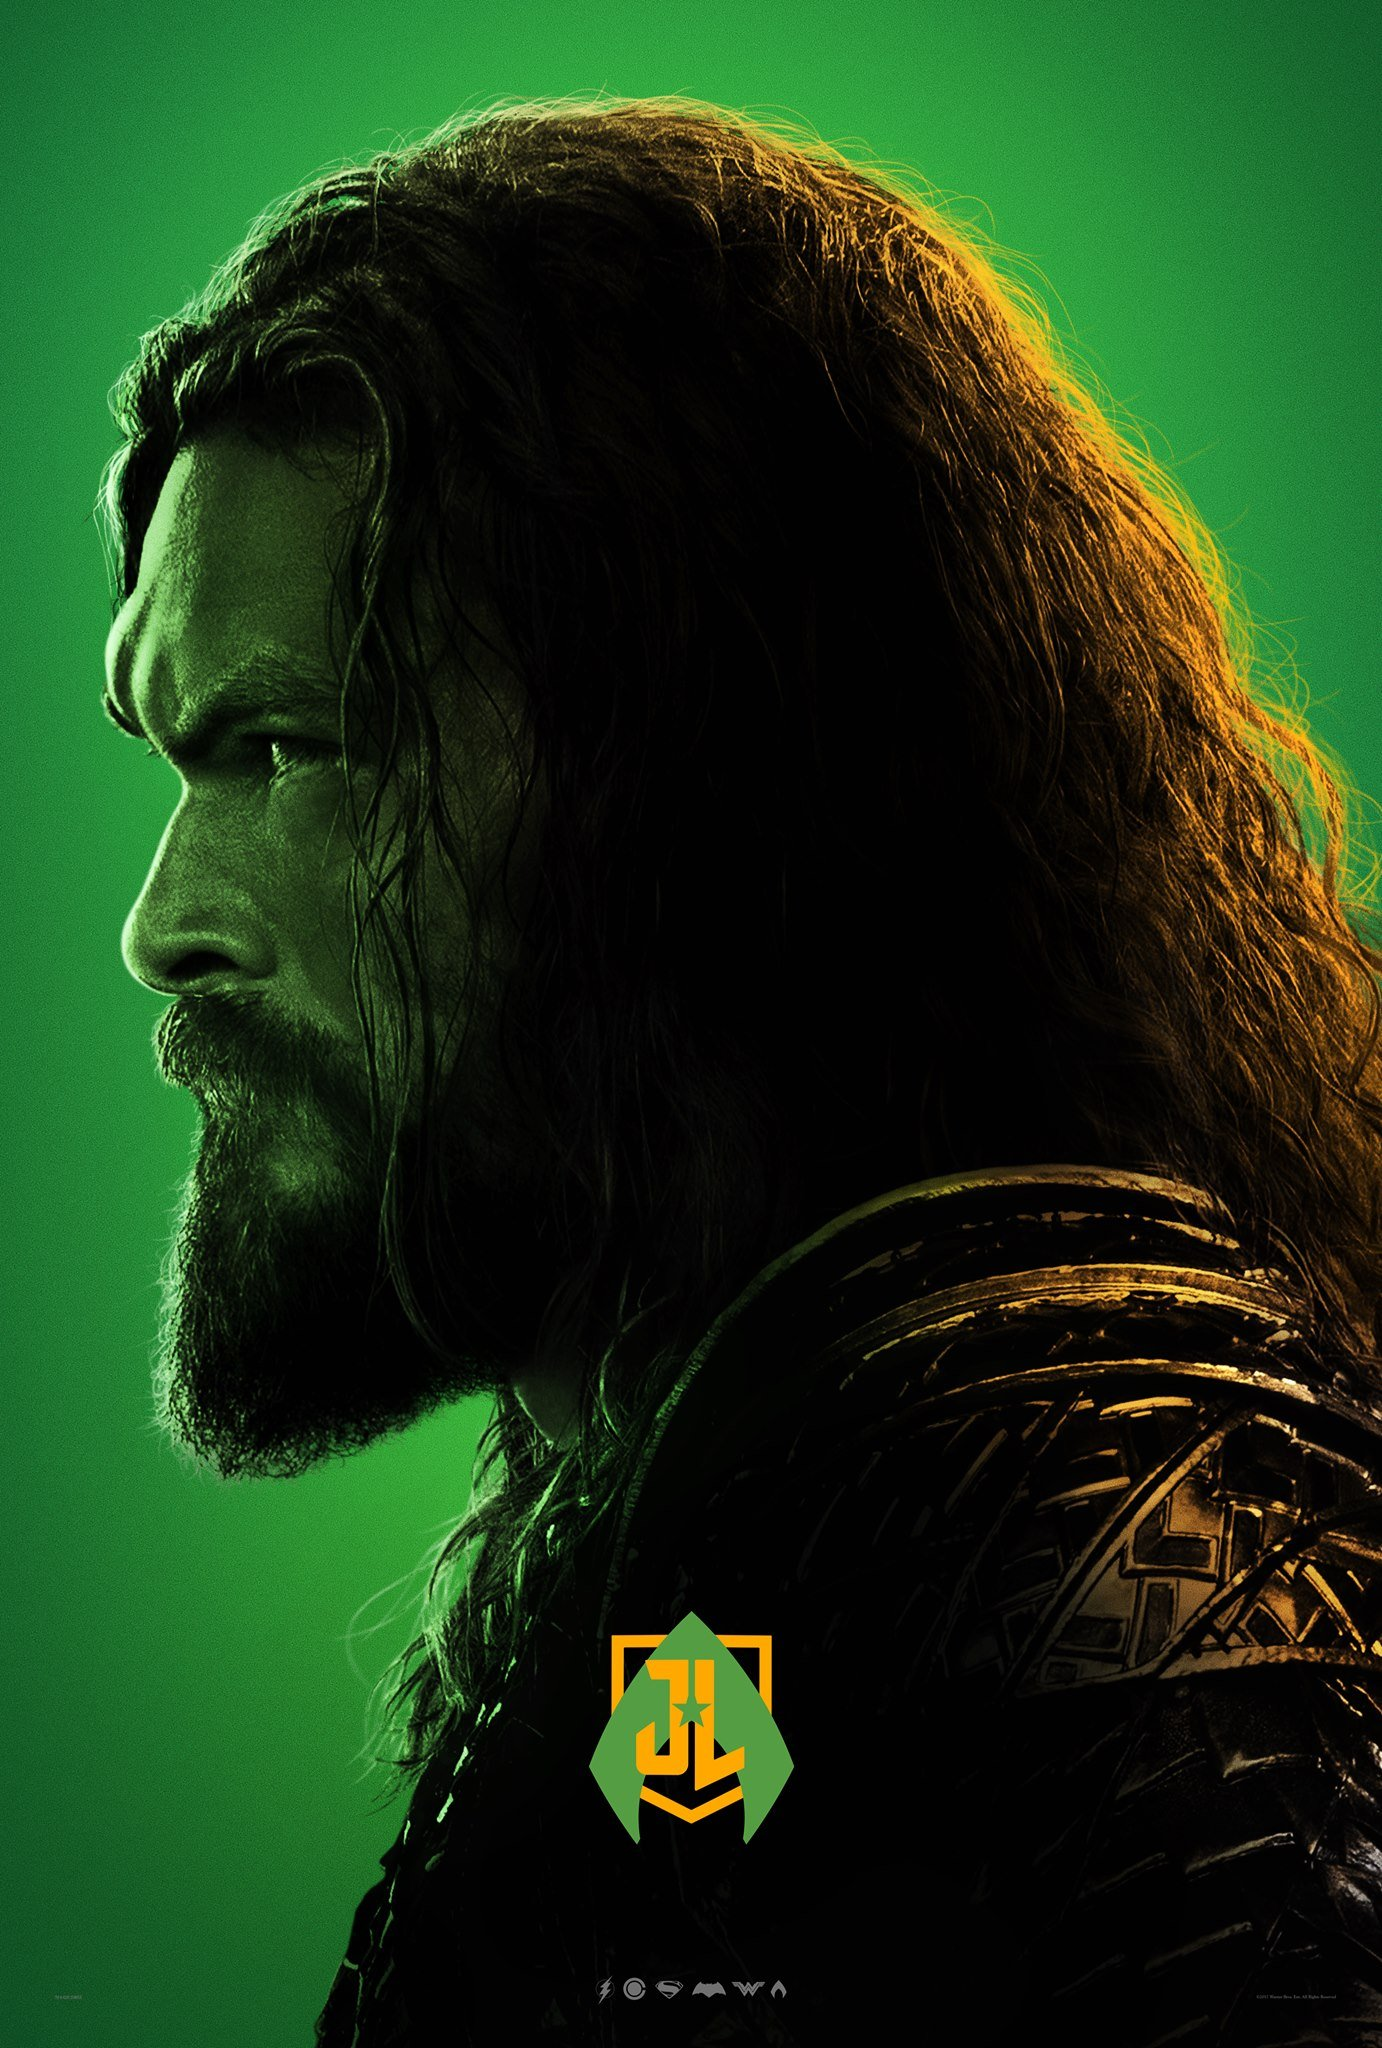 Justice League poster for Aquaman